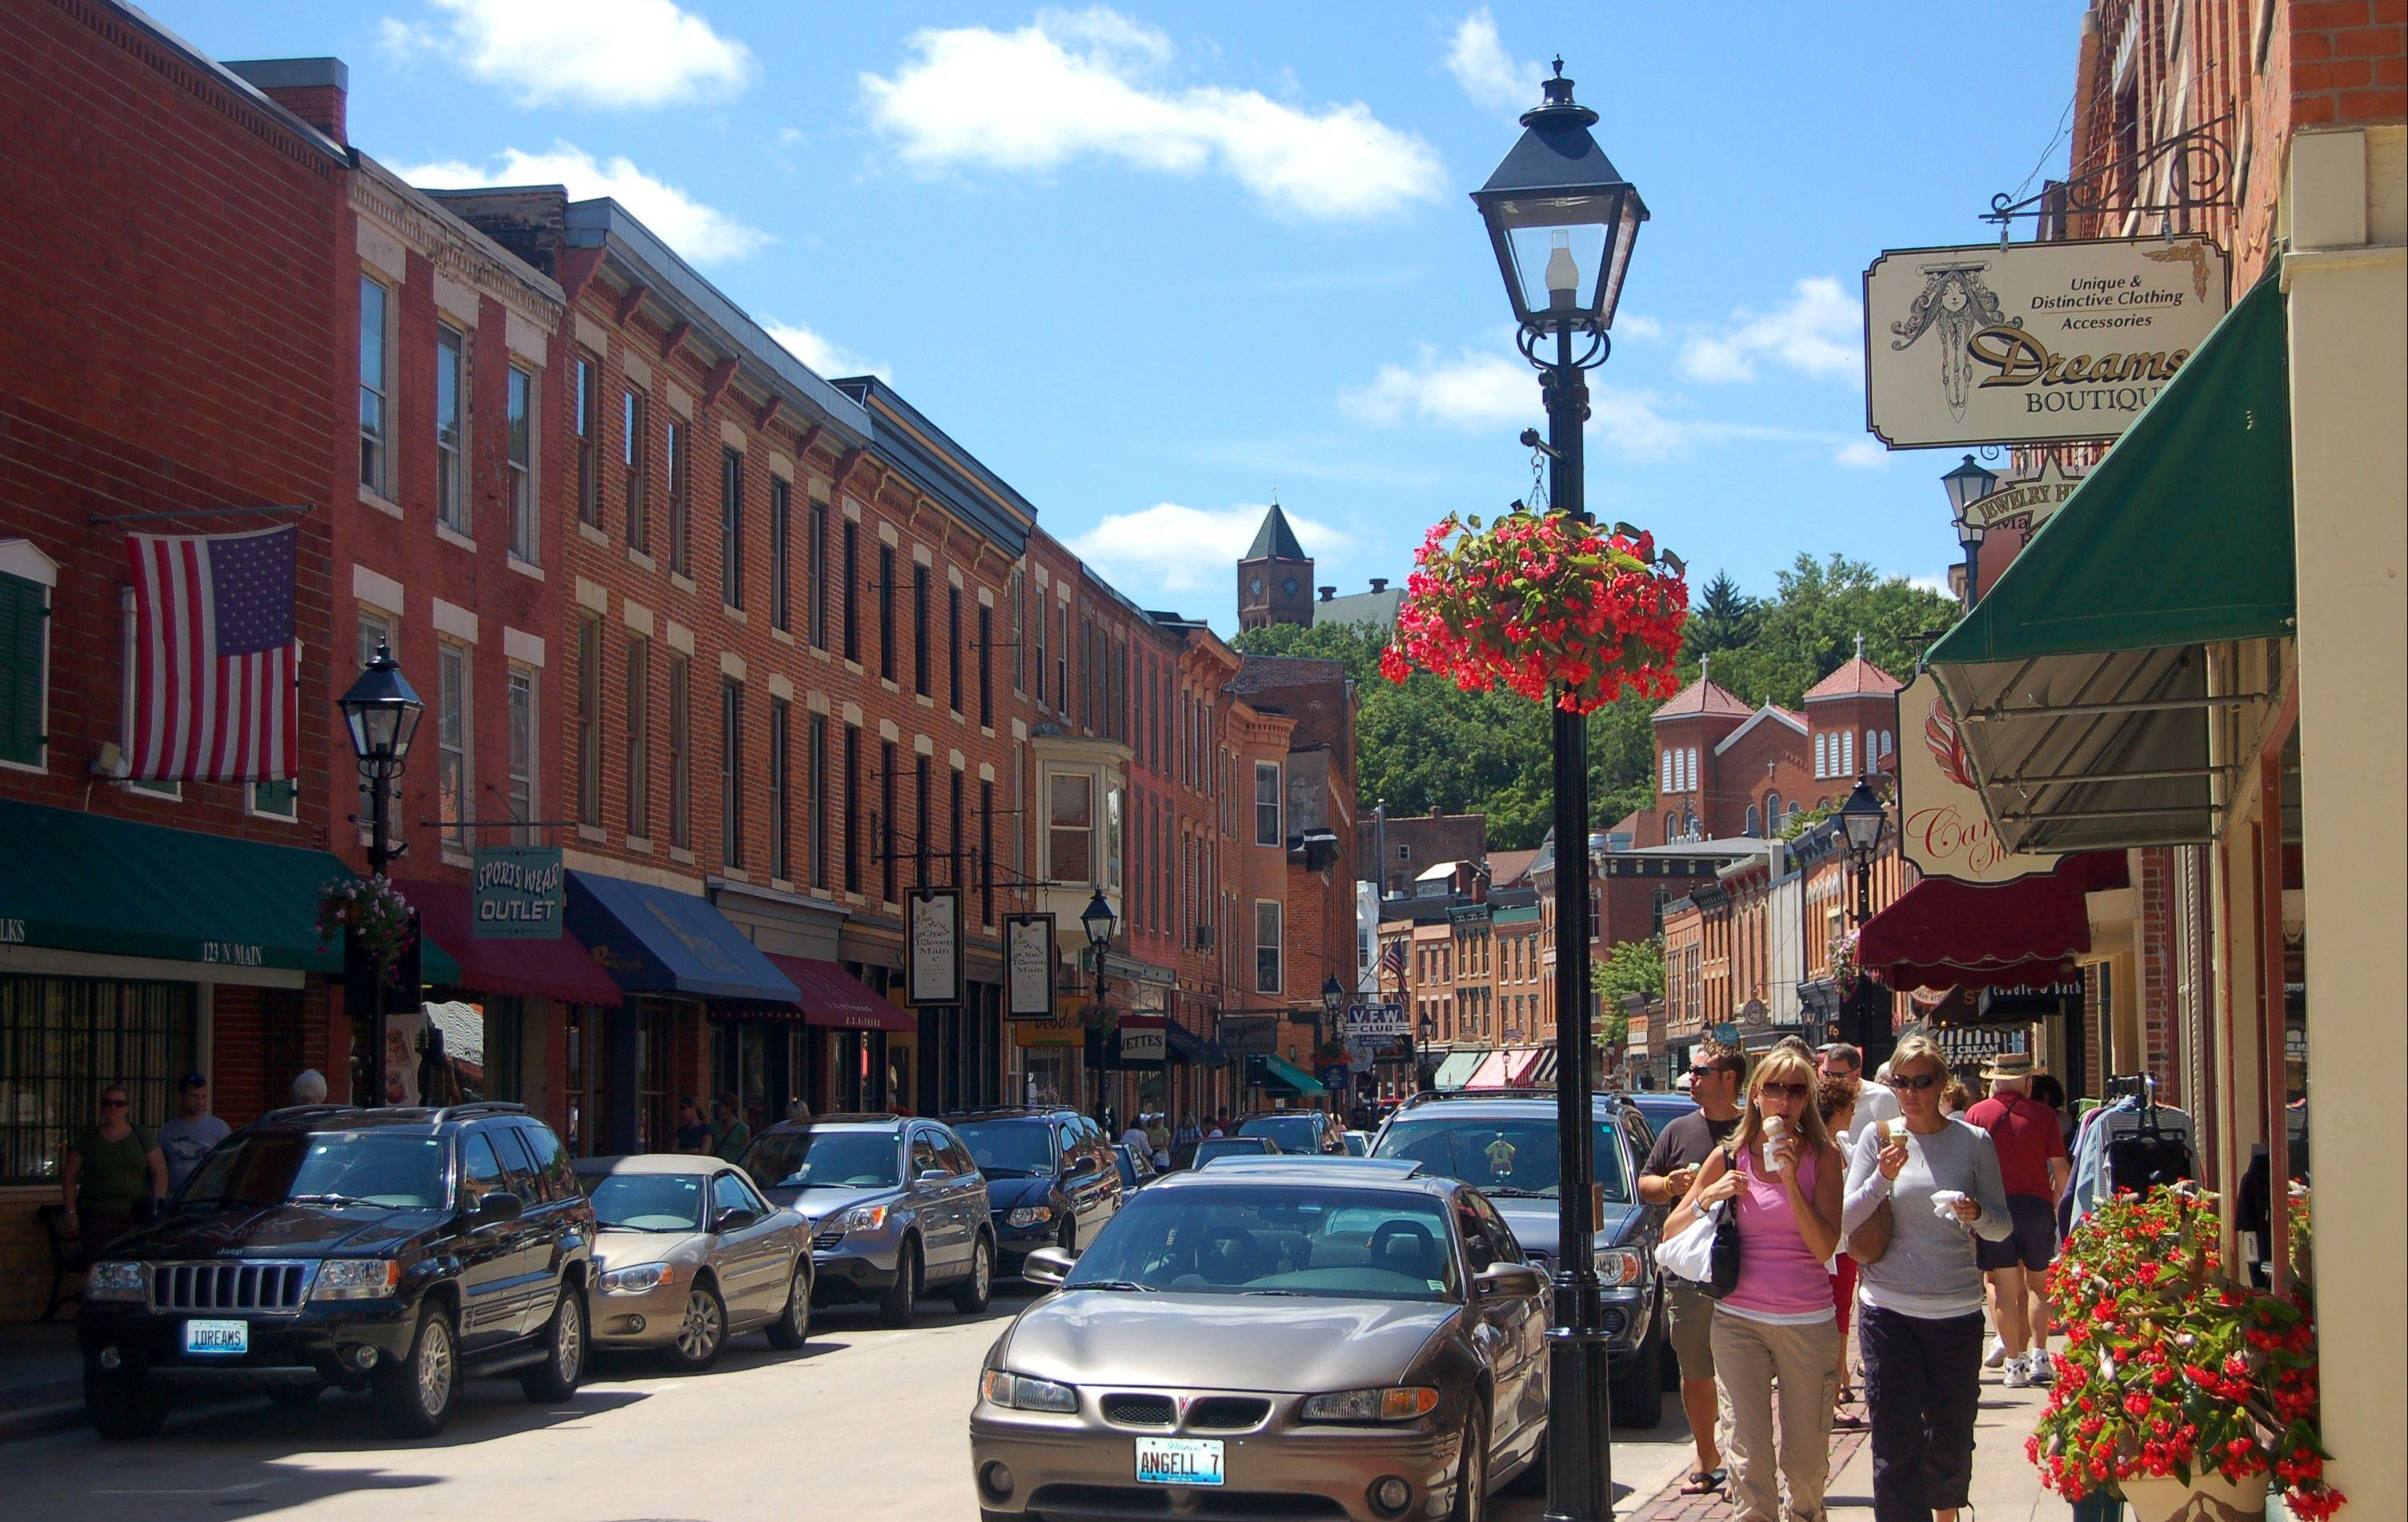 Ladies can enjoy Galena's historic Main Street during the 19th Annual Galena Girlfriends' Getaway weekend Sept. 7-9.